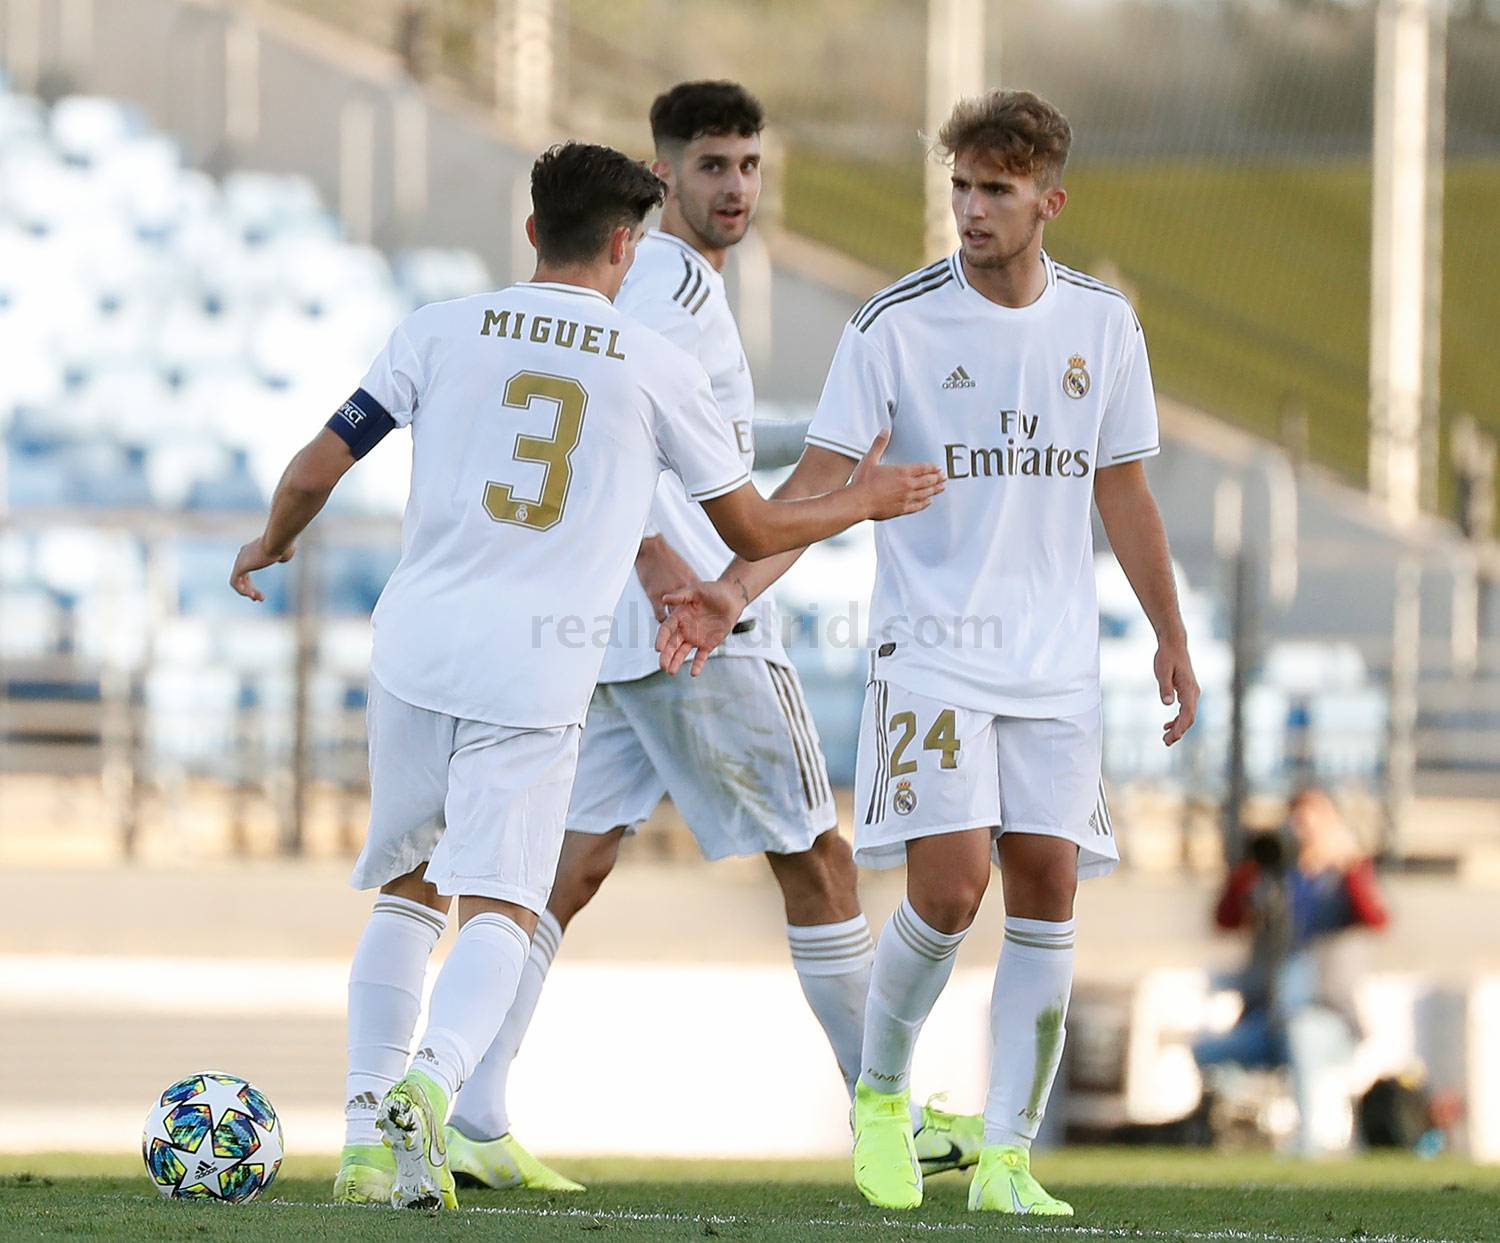 Real Madrid - Juvenil A - Galatasaray - 06-11-2019